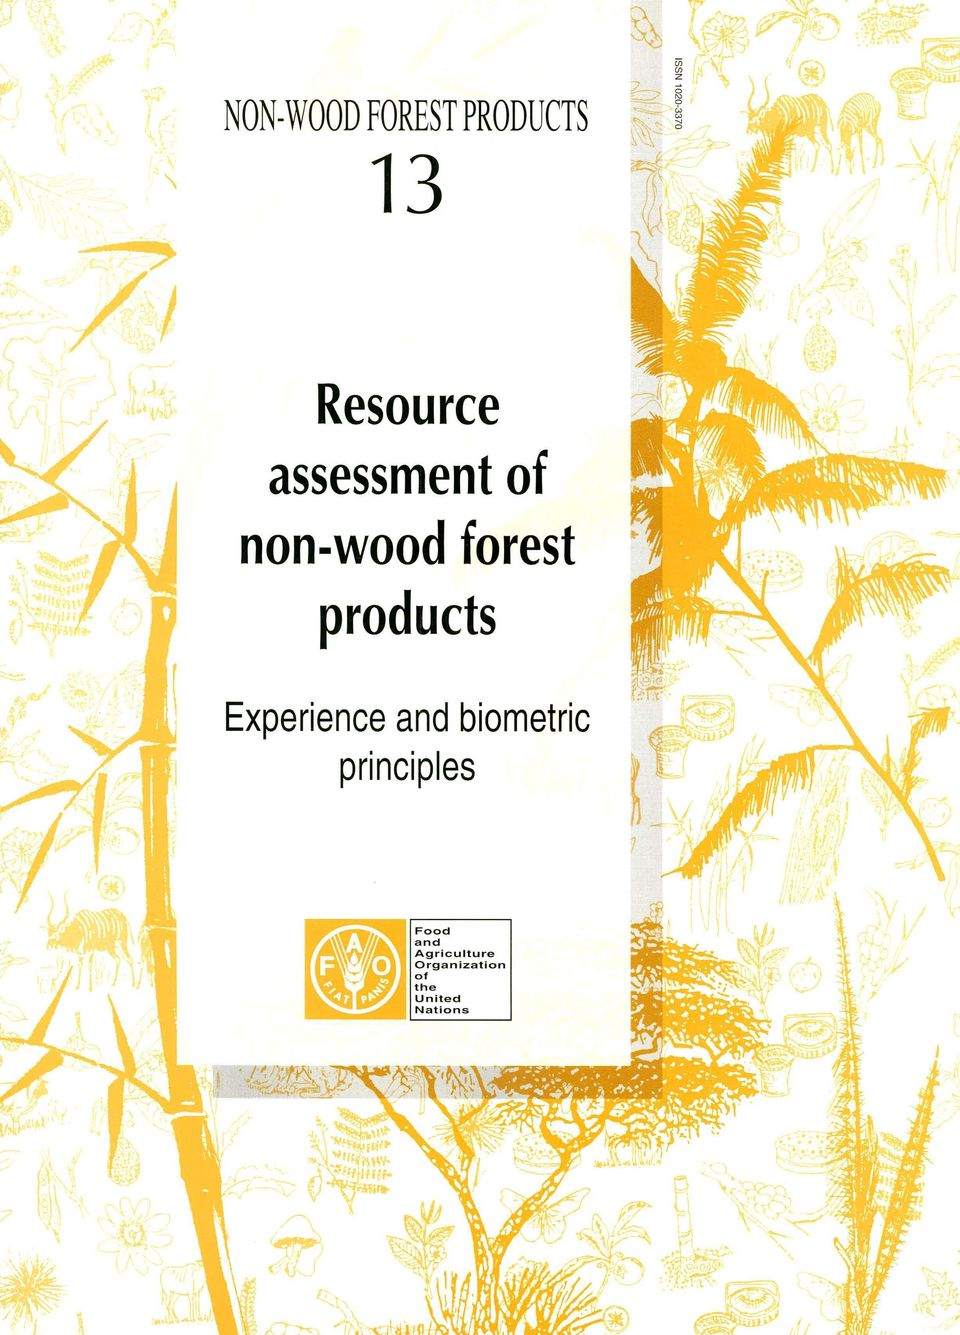 assessment of non-wood forest